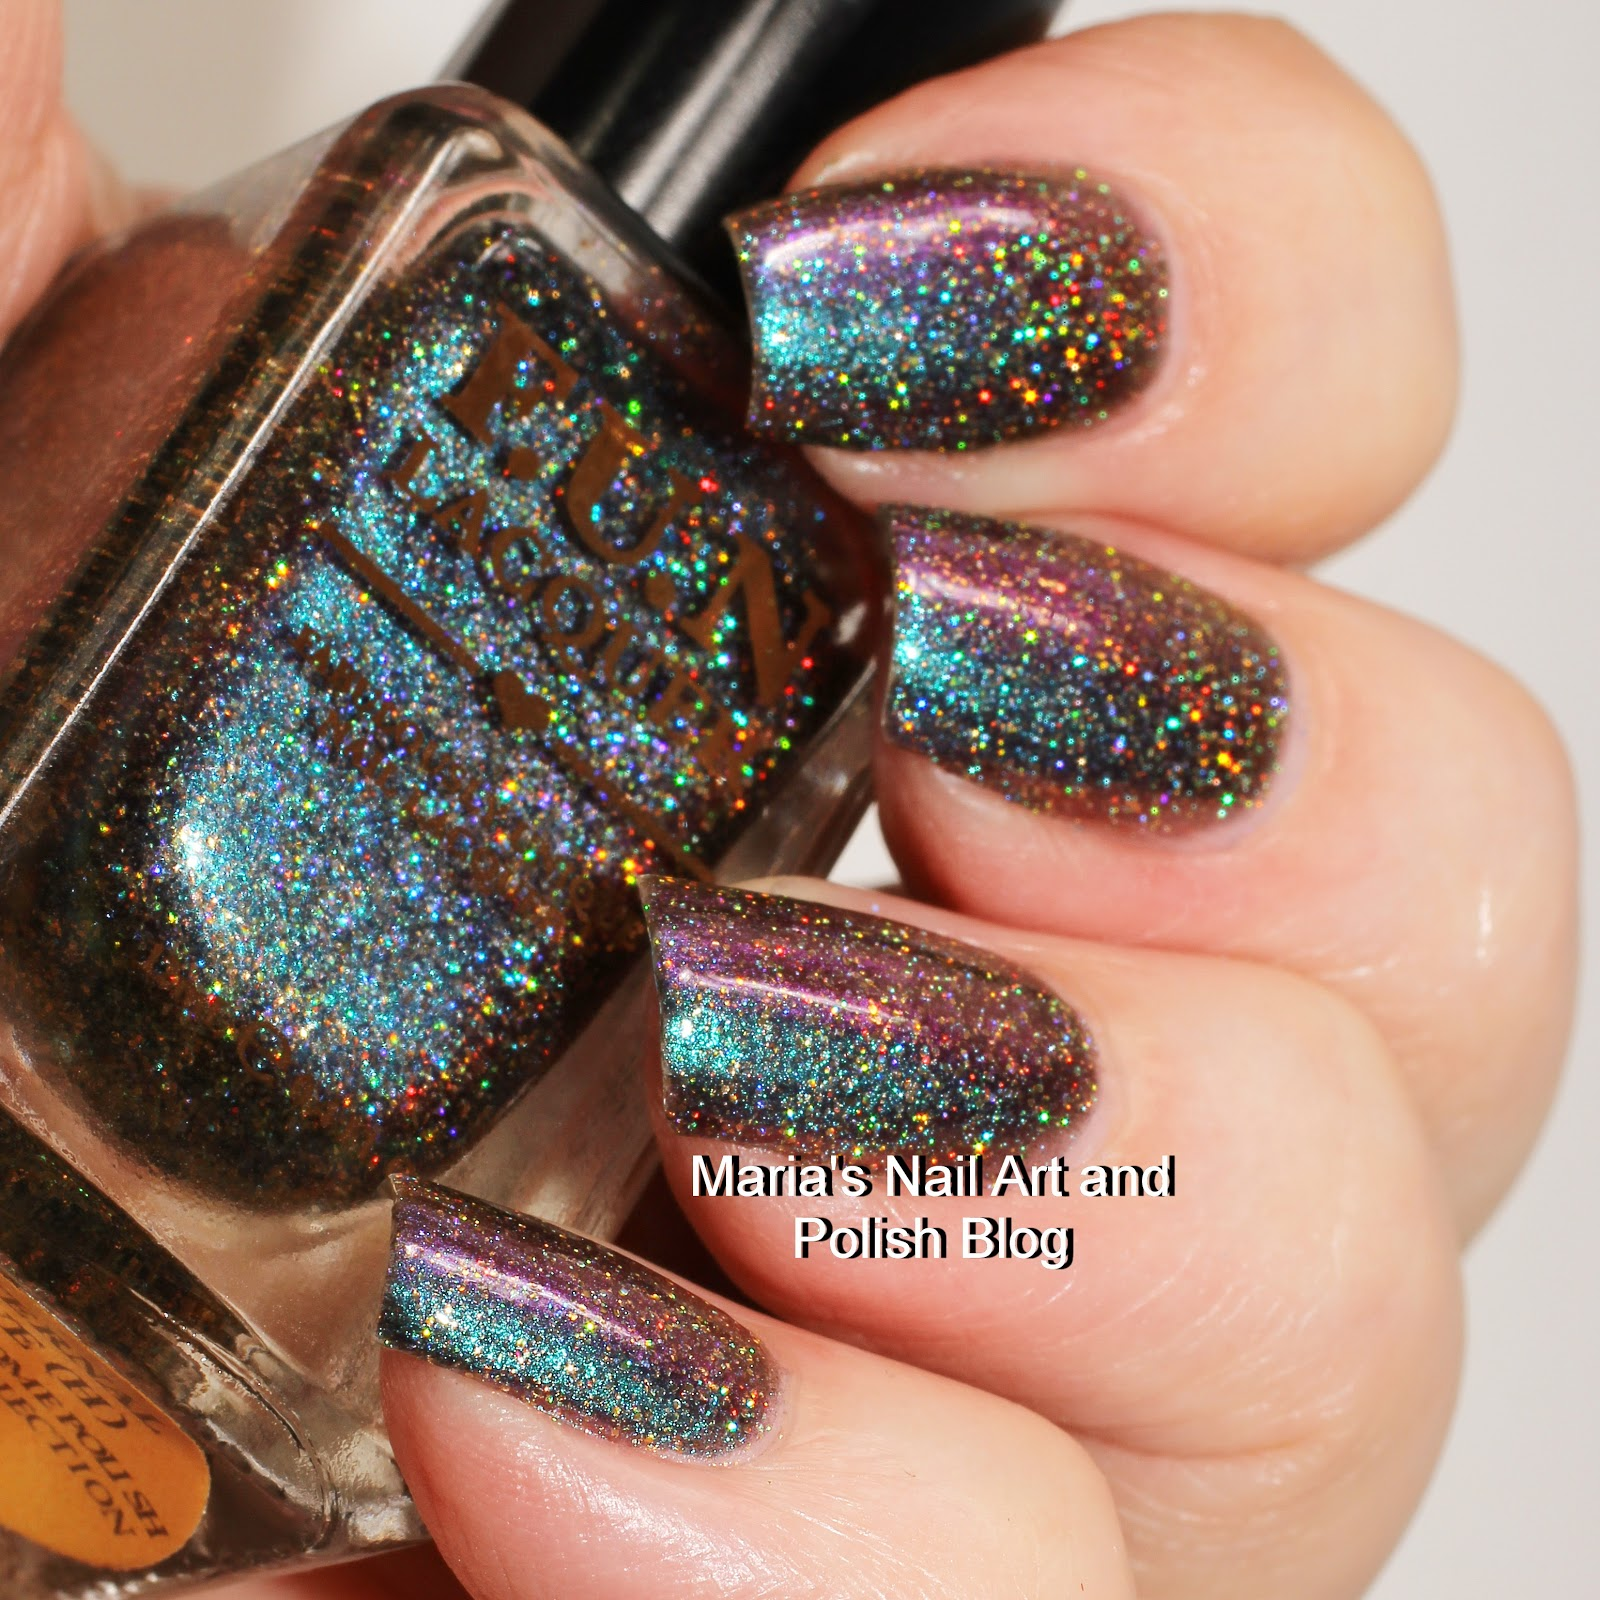 Marias Nail Art and Polish Blog: F.U.N Lacquer Eternal Love (H) swatches